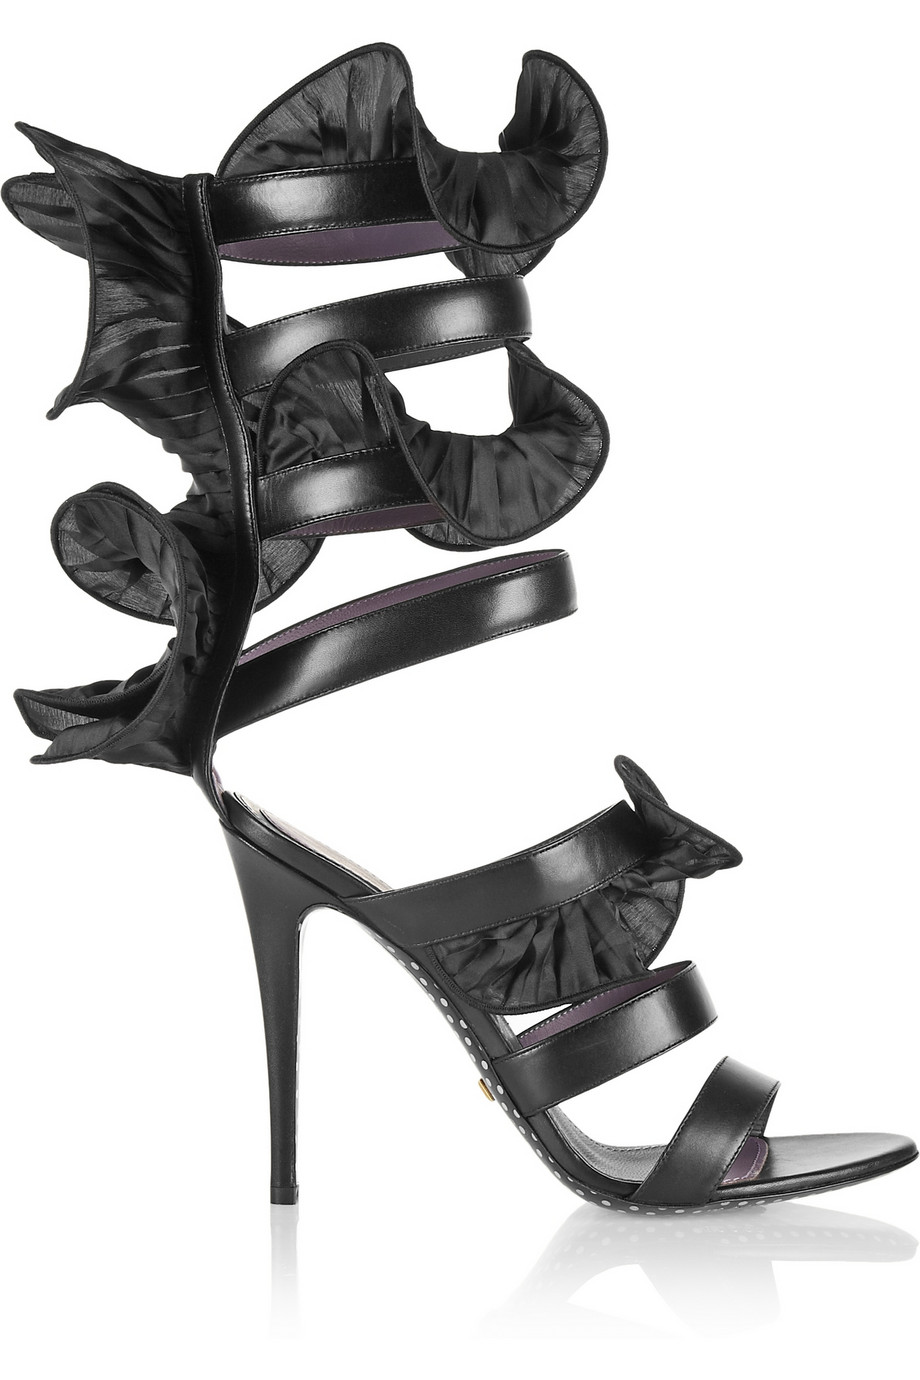 Emanuel Ungaro shoes